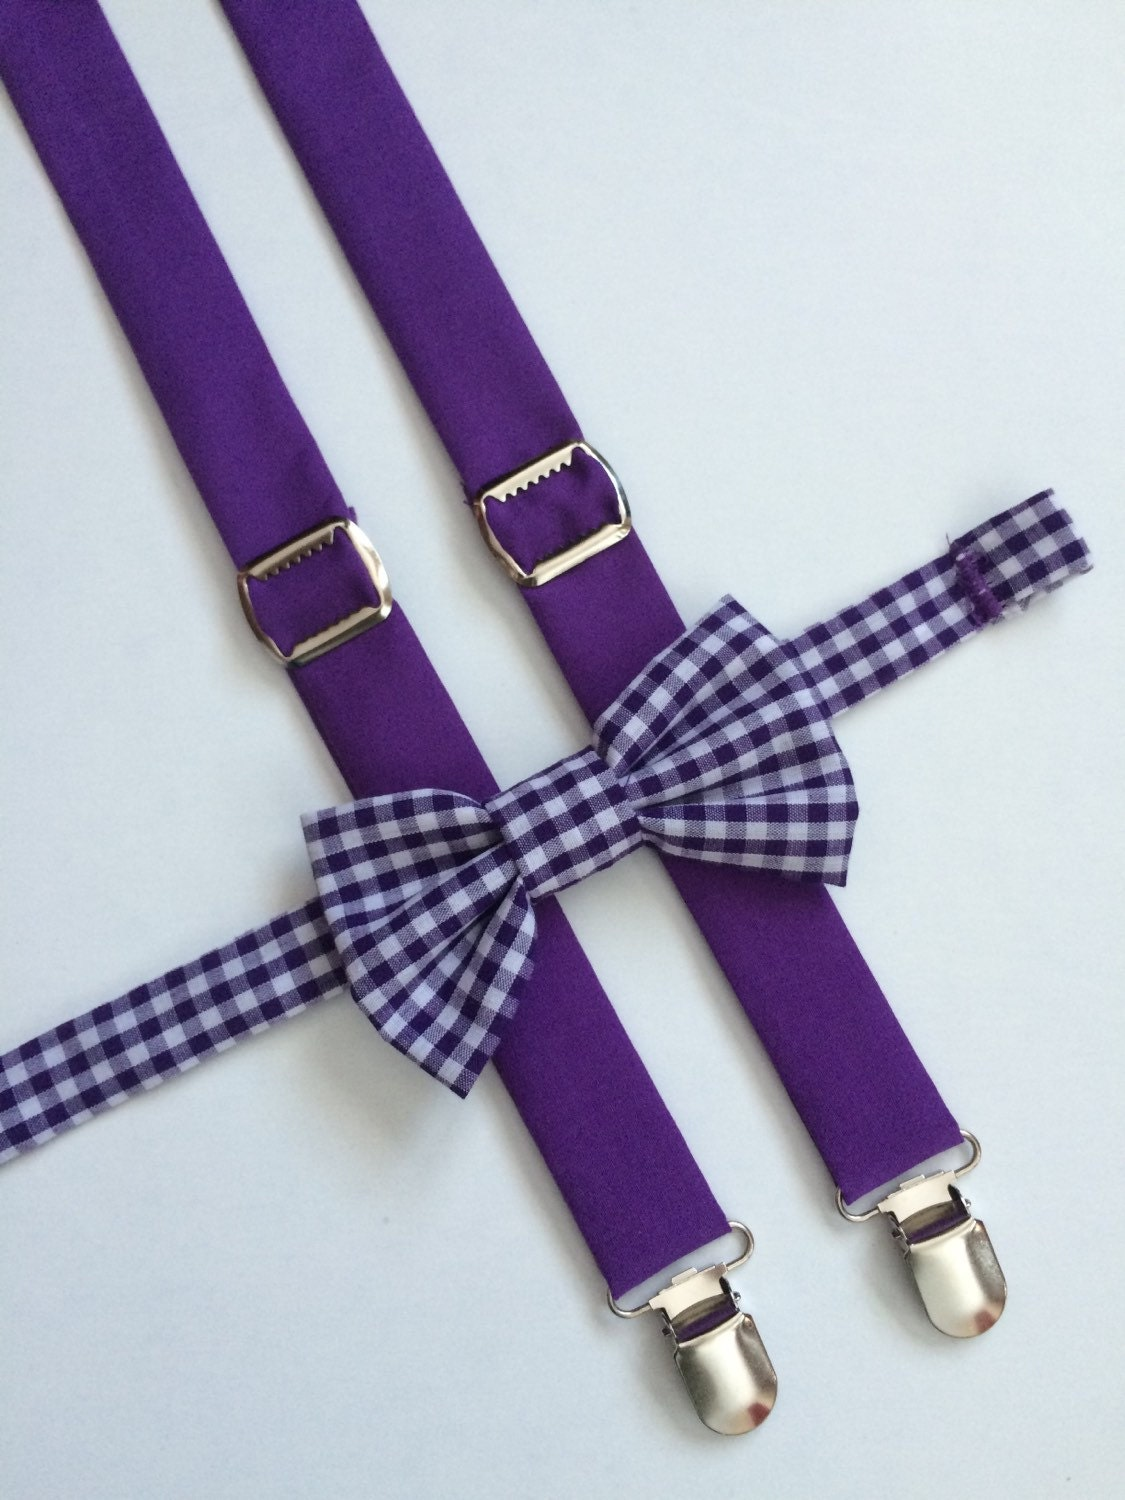 These elastic trouser braces for men (also called suspenders) are great stylish alternative to a belt. With a wide range of colours and designs, we have perfect braces for weddings and work.